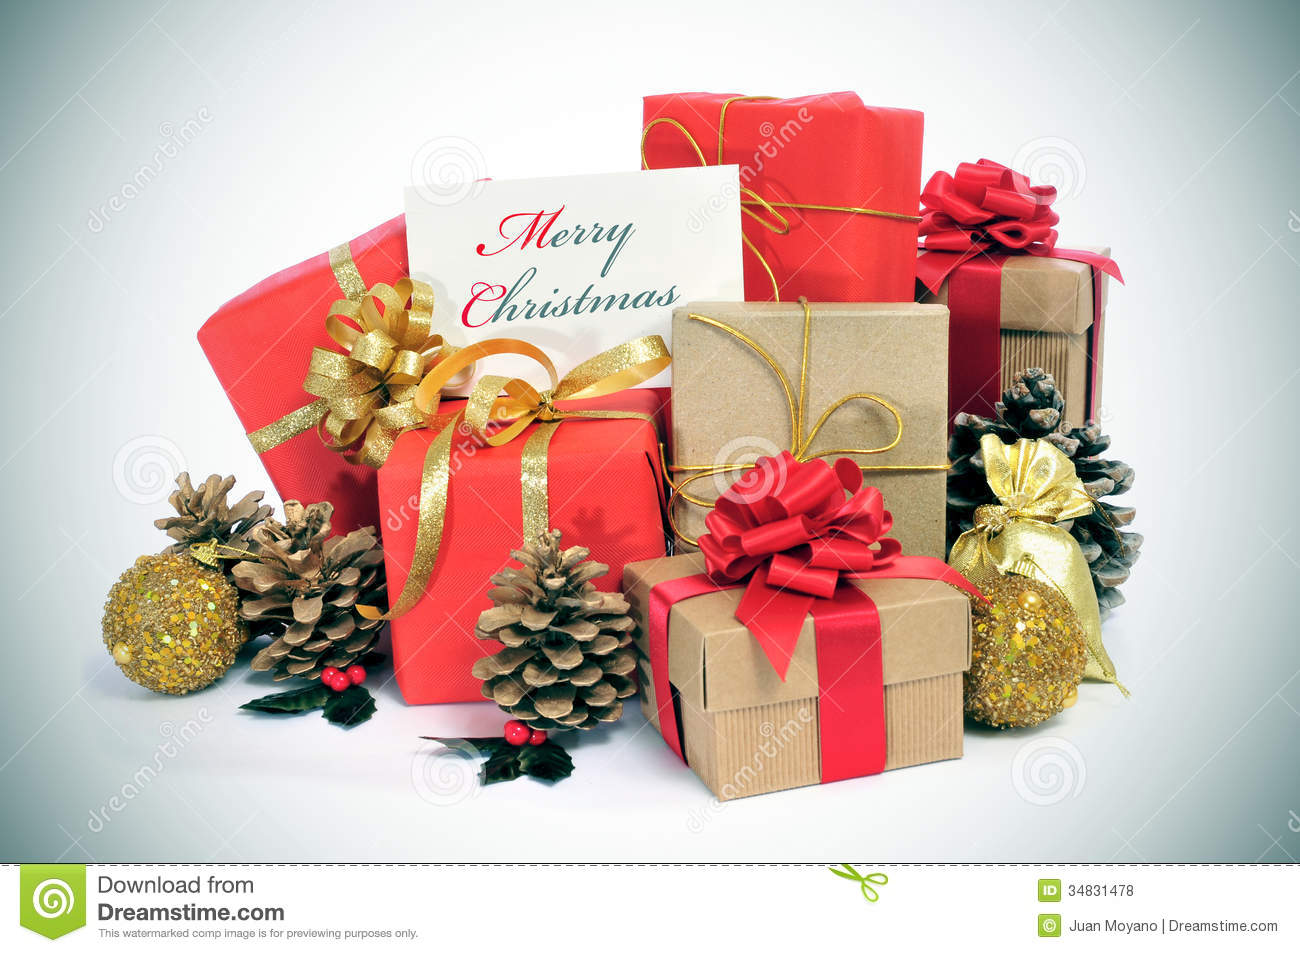 Merry Christmas Gift.Merry Christmas Stock Photo Image Of Celebrate Presents